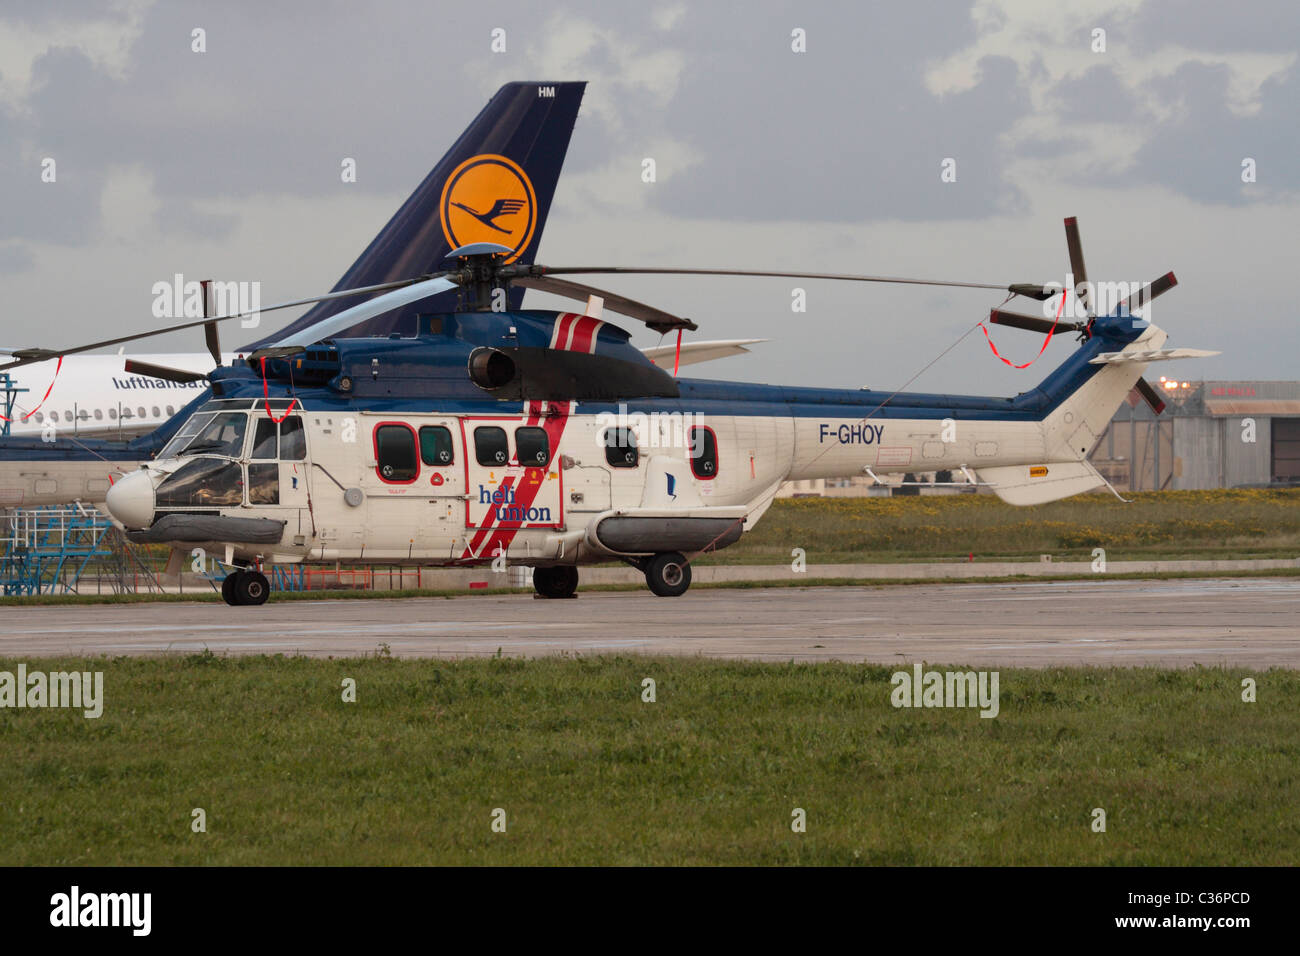 Heli-Union Super Puma helicopter parked on the ground - Stock Image